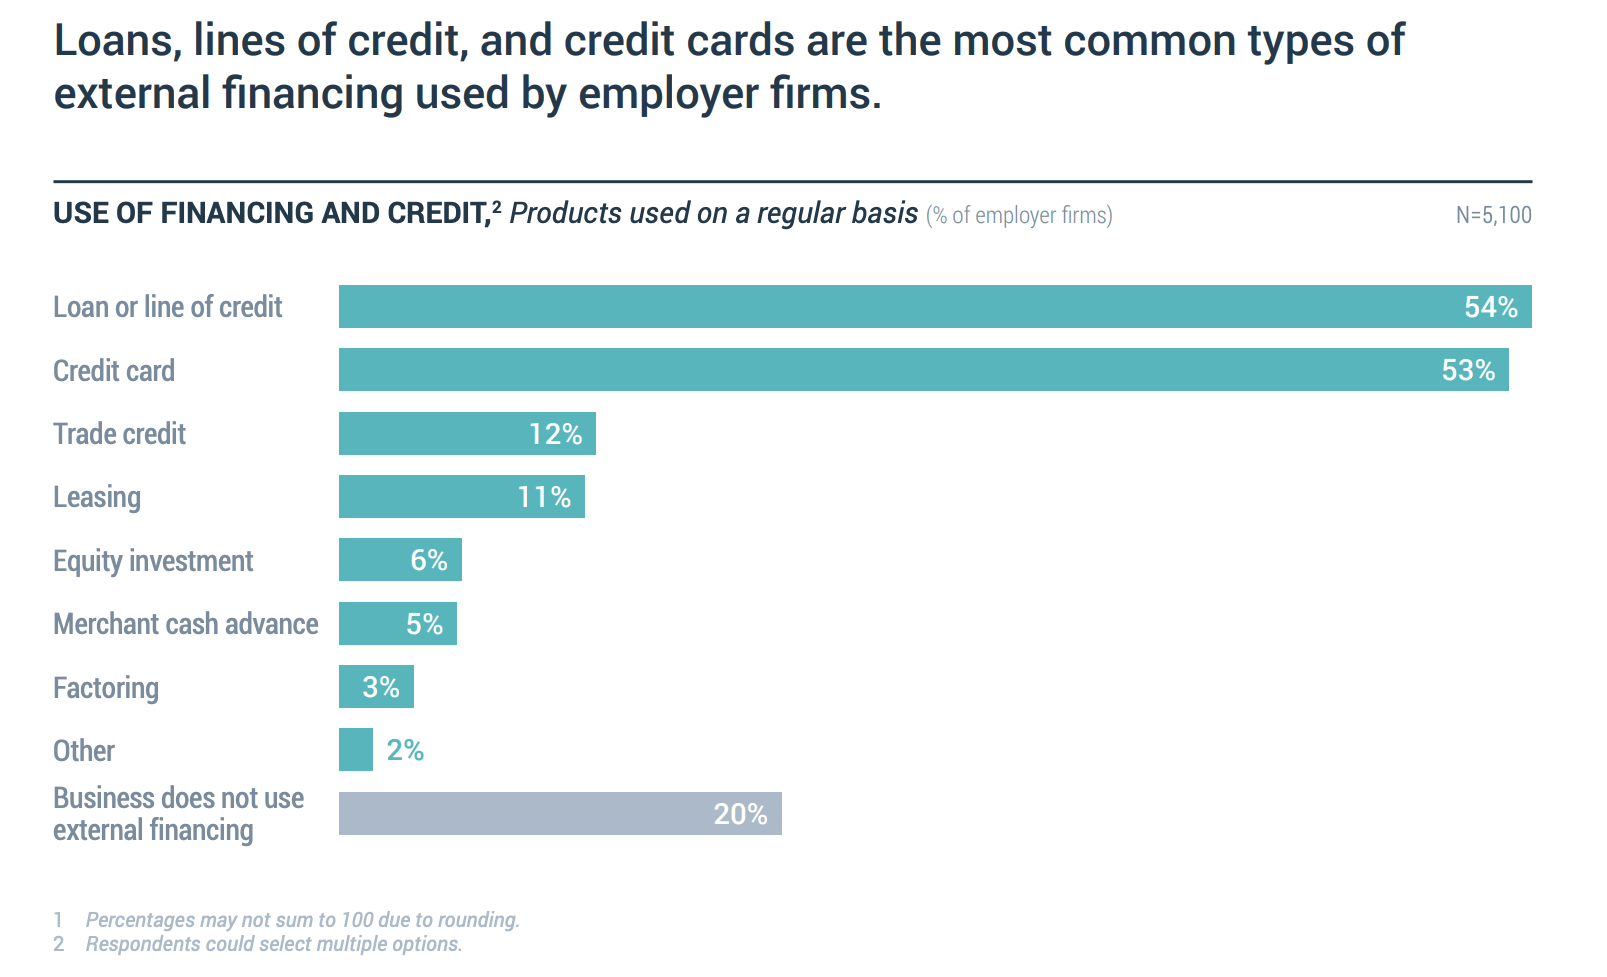 use of financing and credit by type